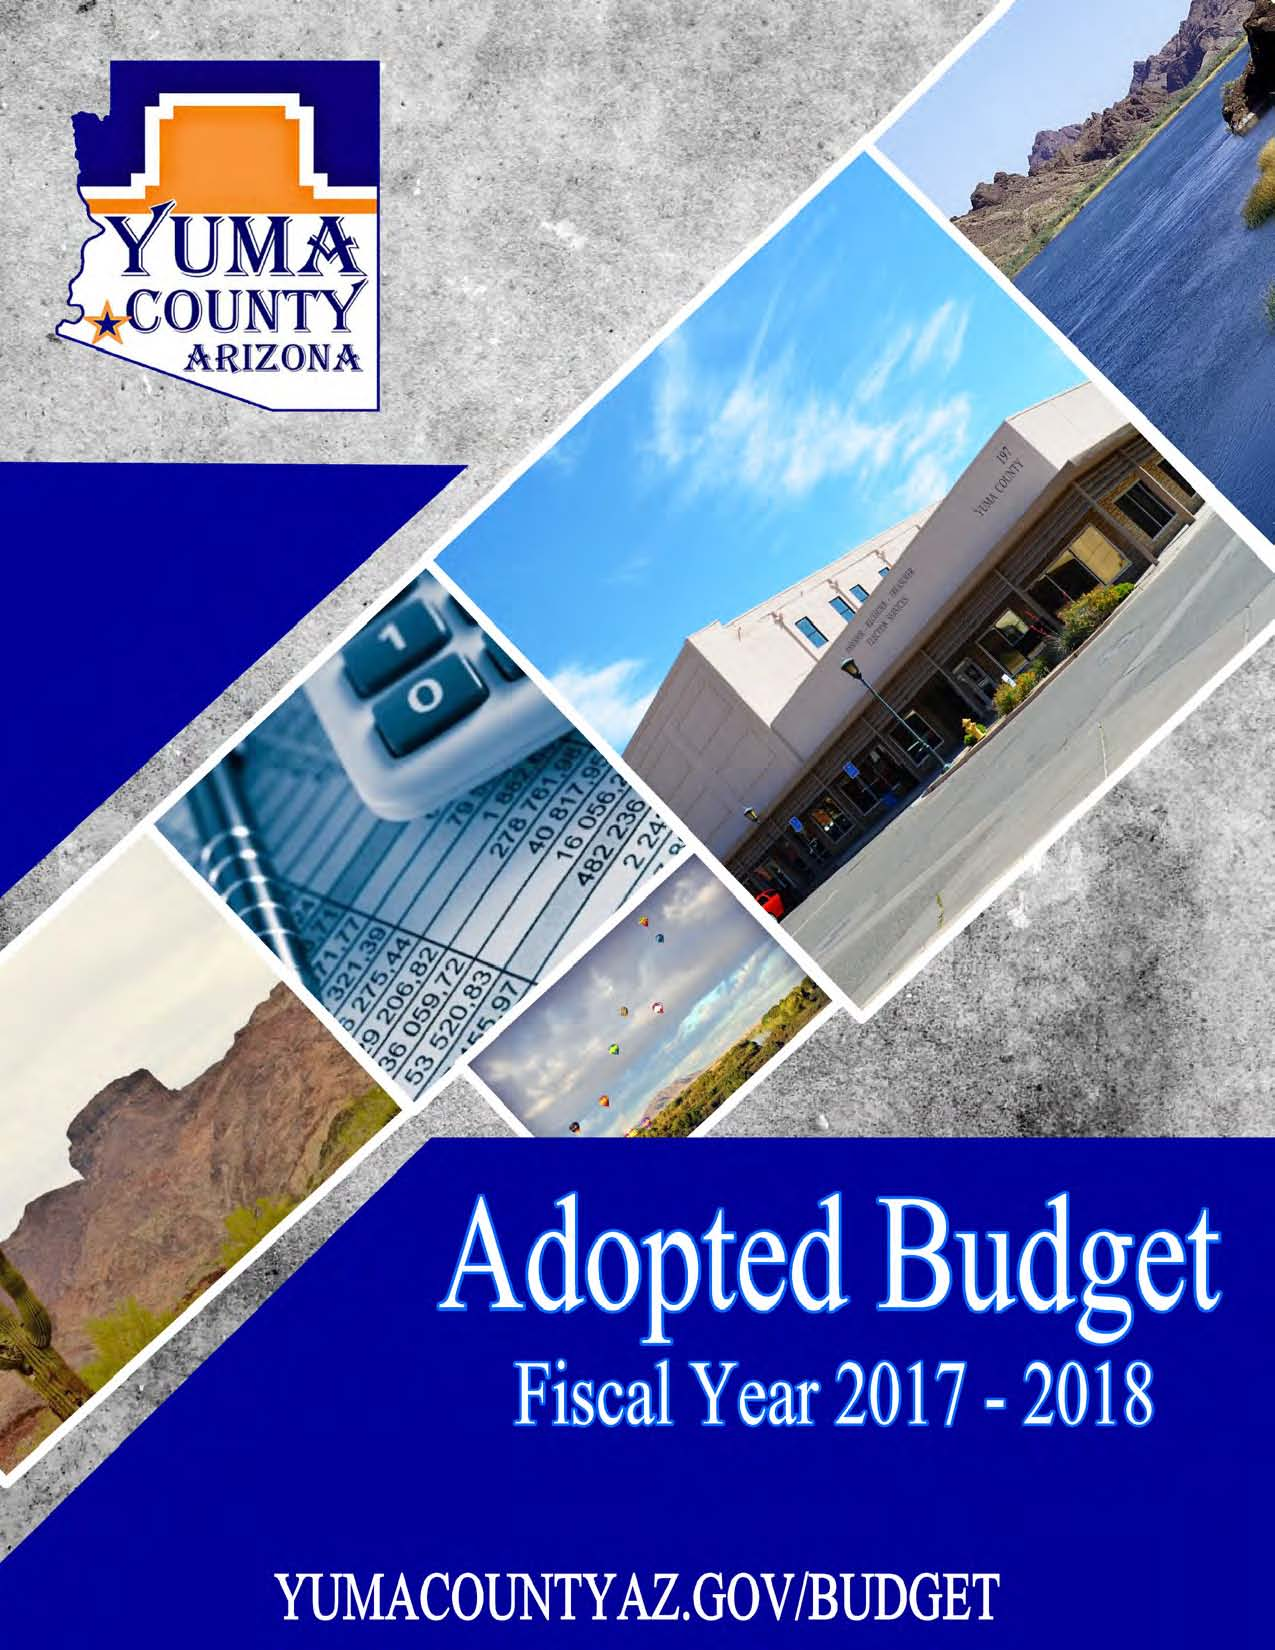 Adopted Budget (front cover)